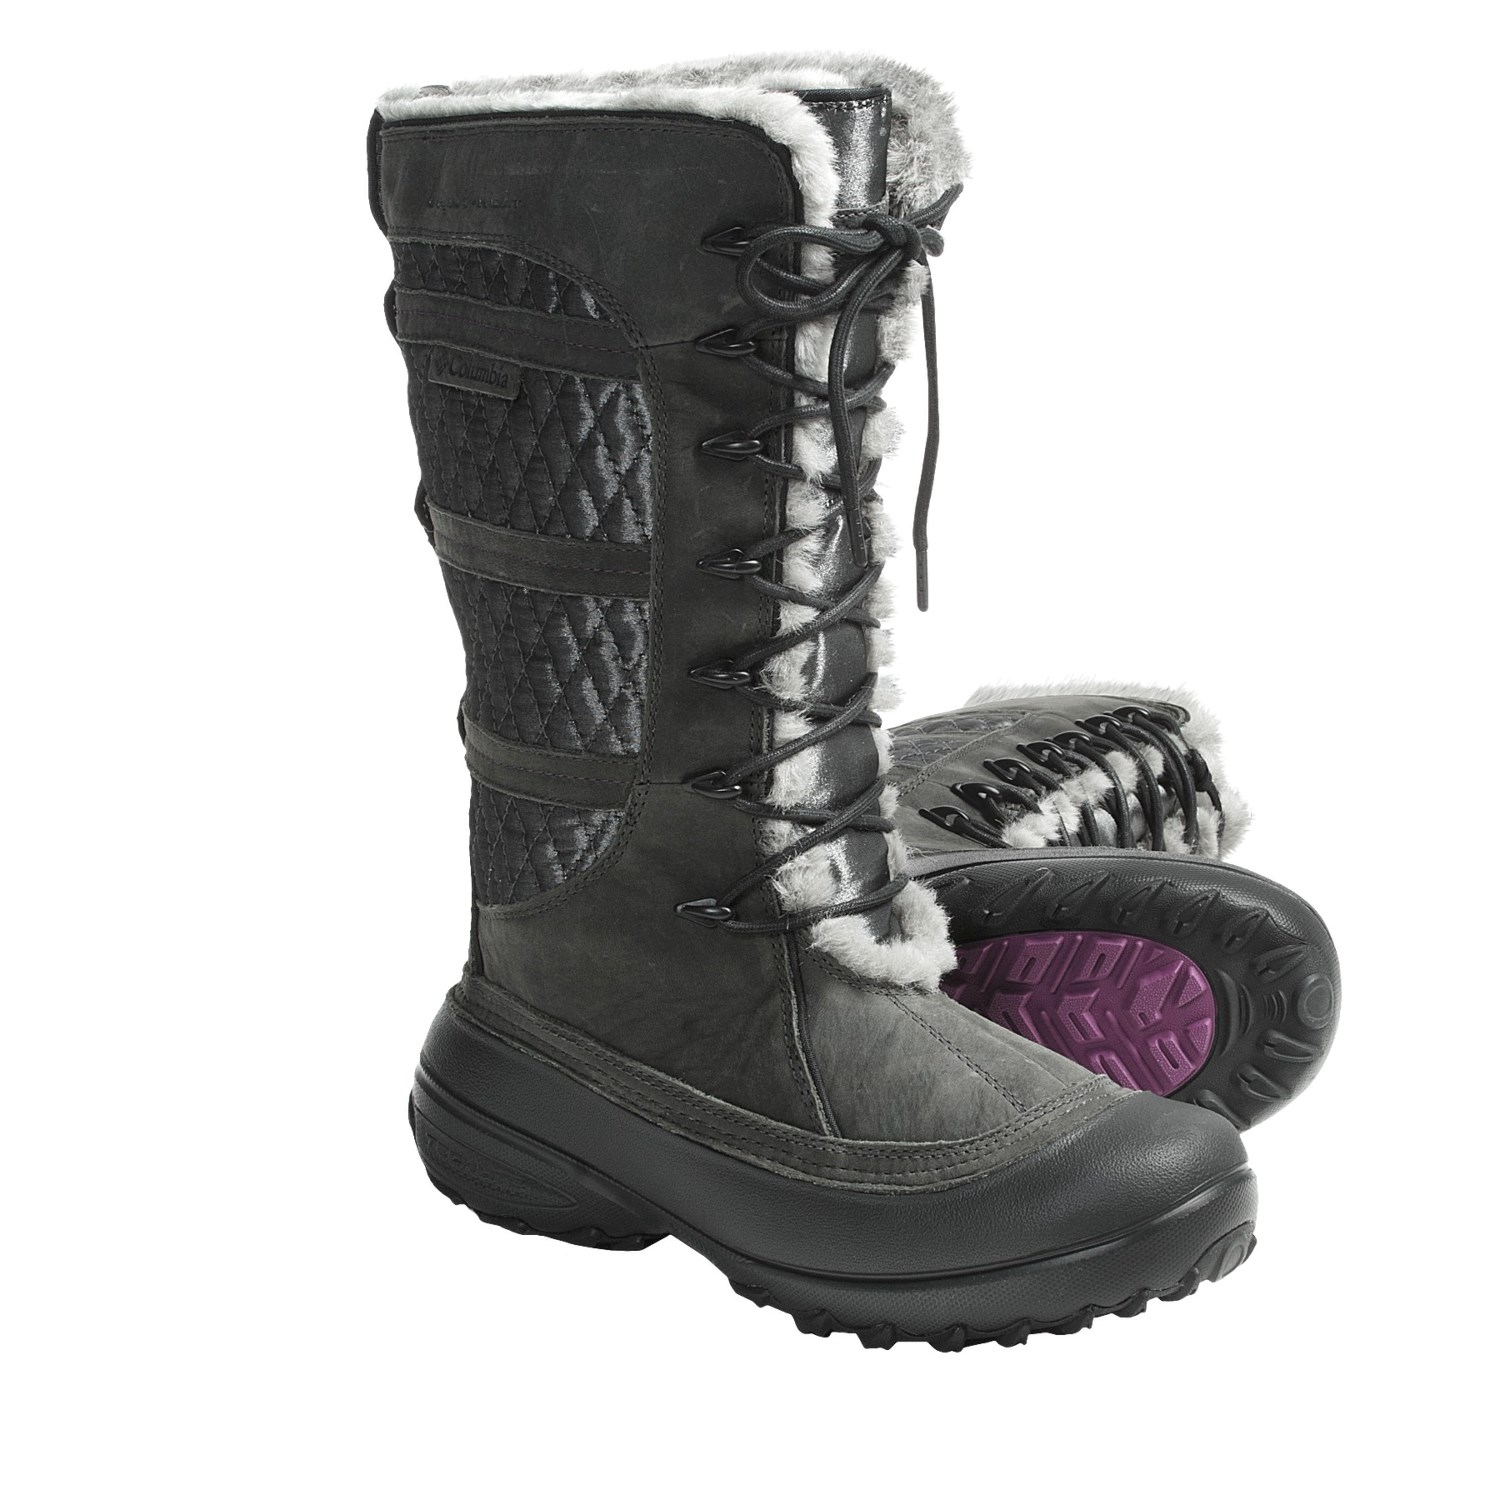 Elegant   Boots  Womens Black Nevada Snow Ski Yeti Fur Moon Flat Boots